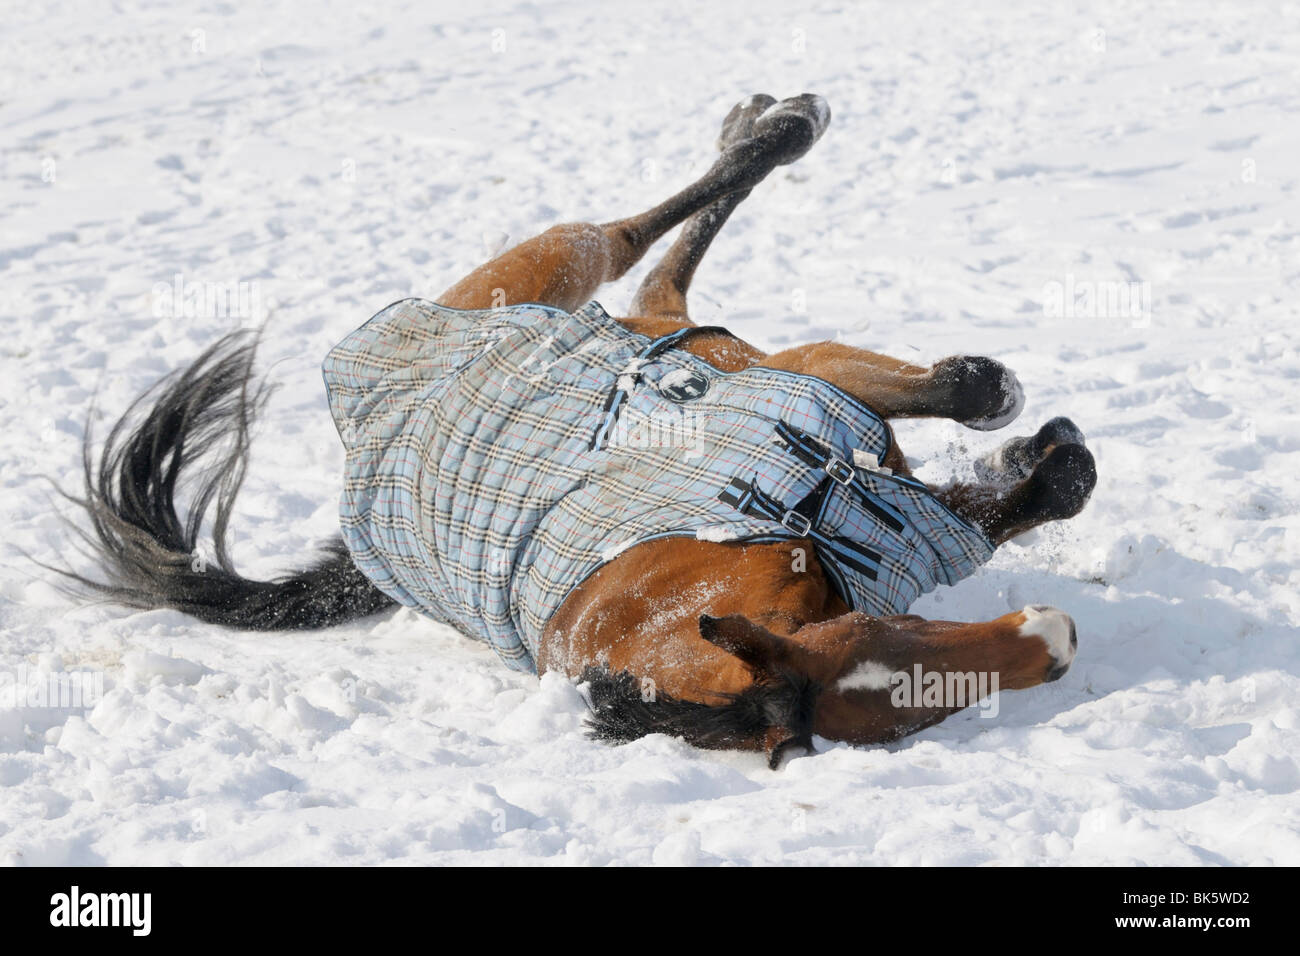 Oldenburg breed horse wearing a rug rolling in snow - Stock Image